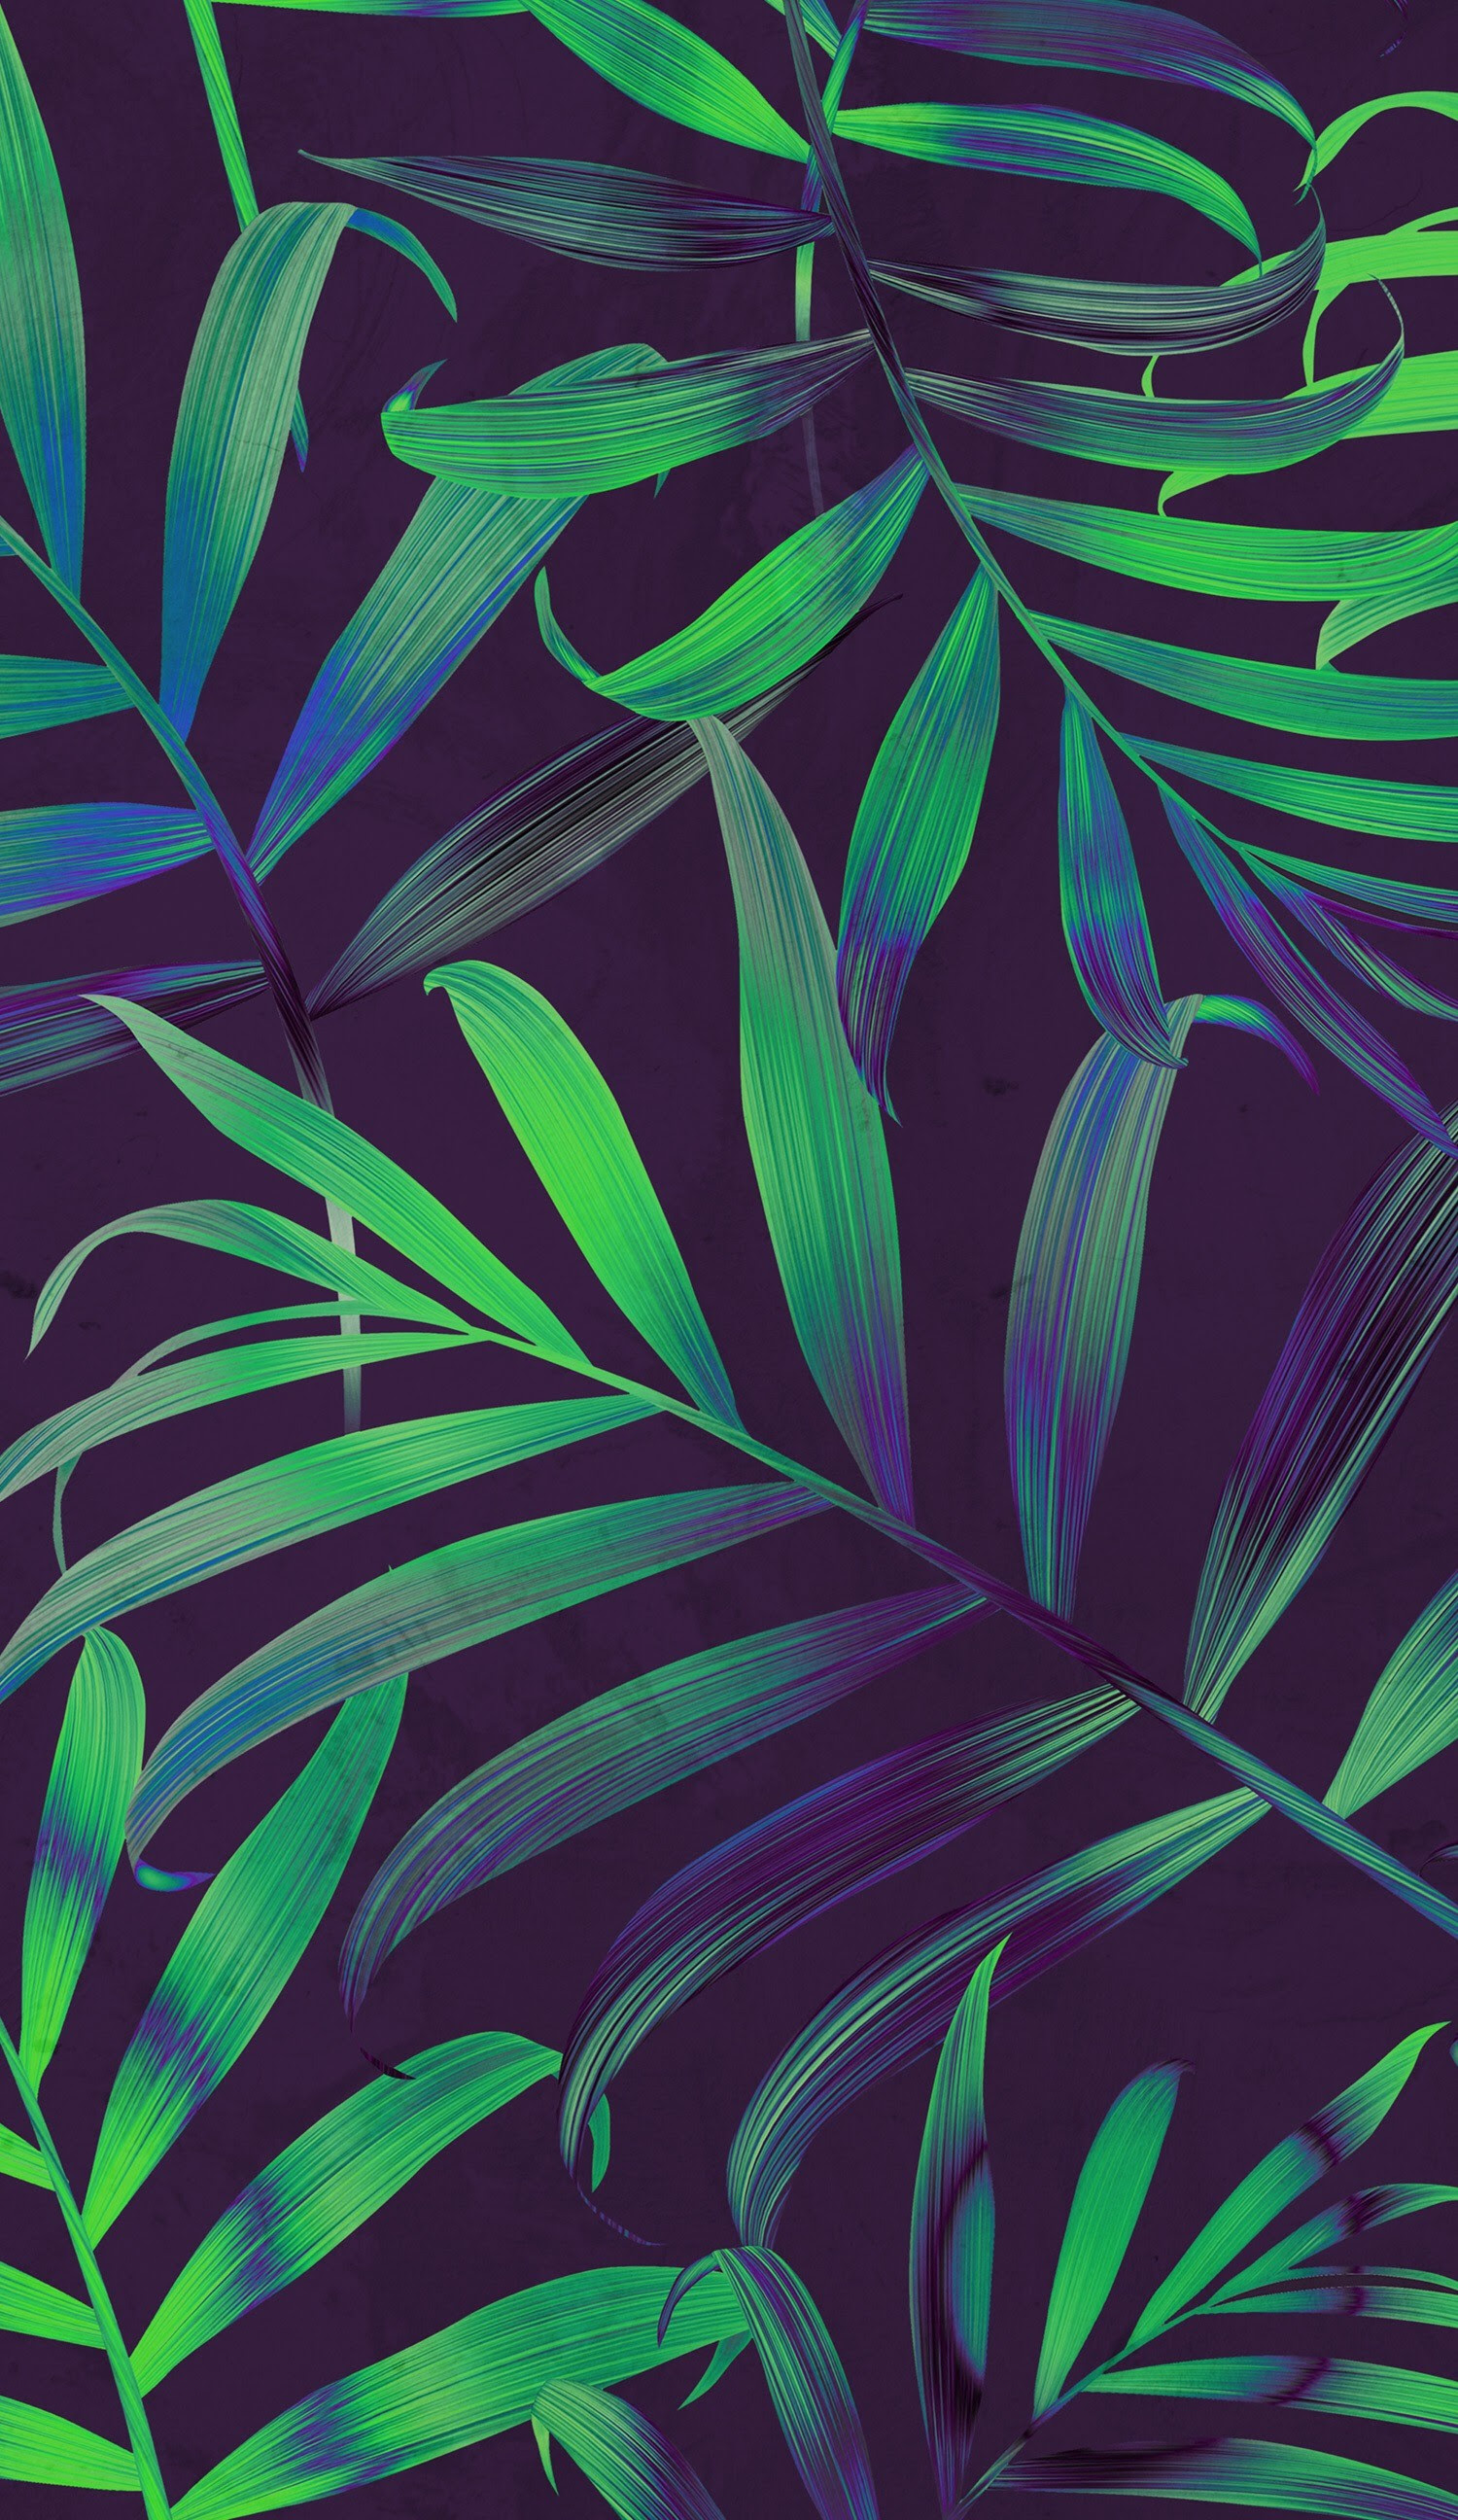 Dope Tumblr Backgrounds 83+ images